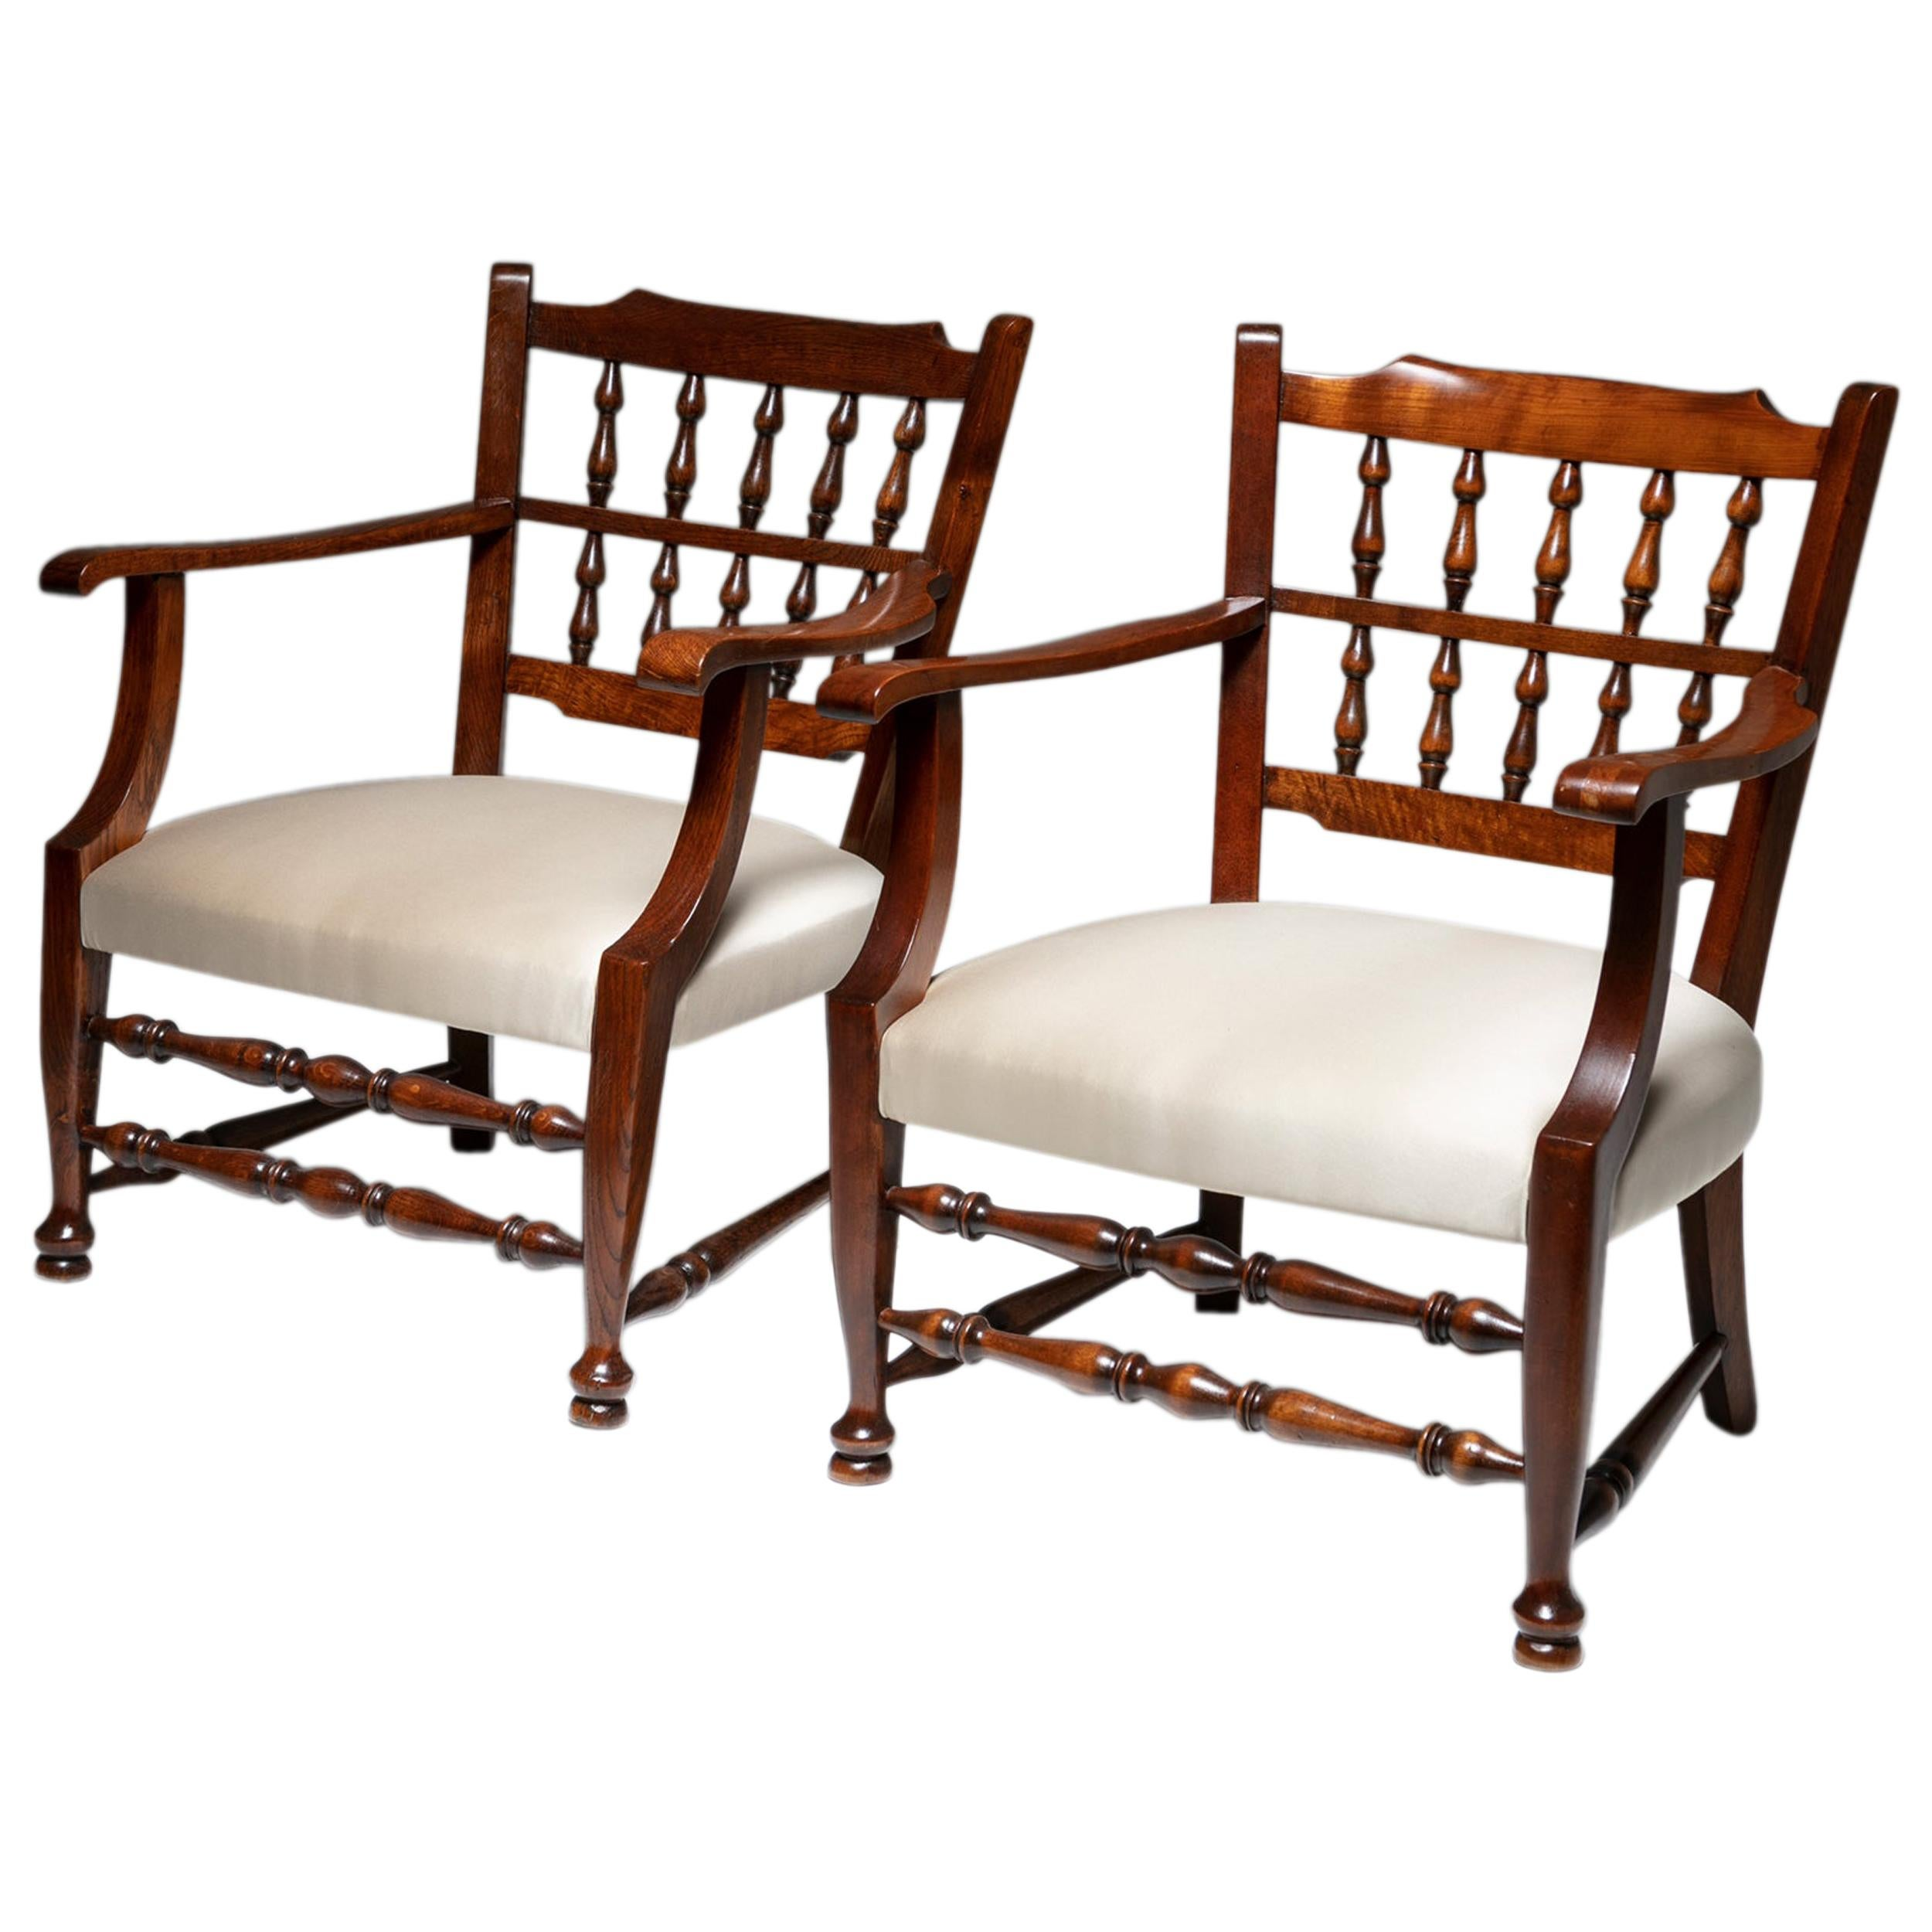 Rare Pair of Armchairs by Tomaso Buzzi